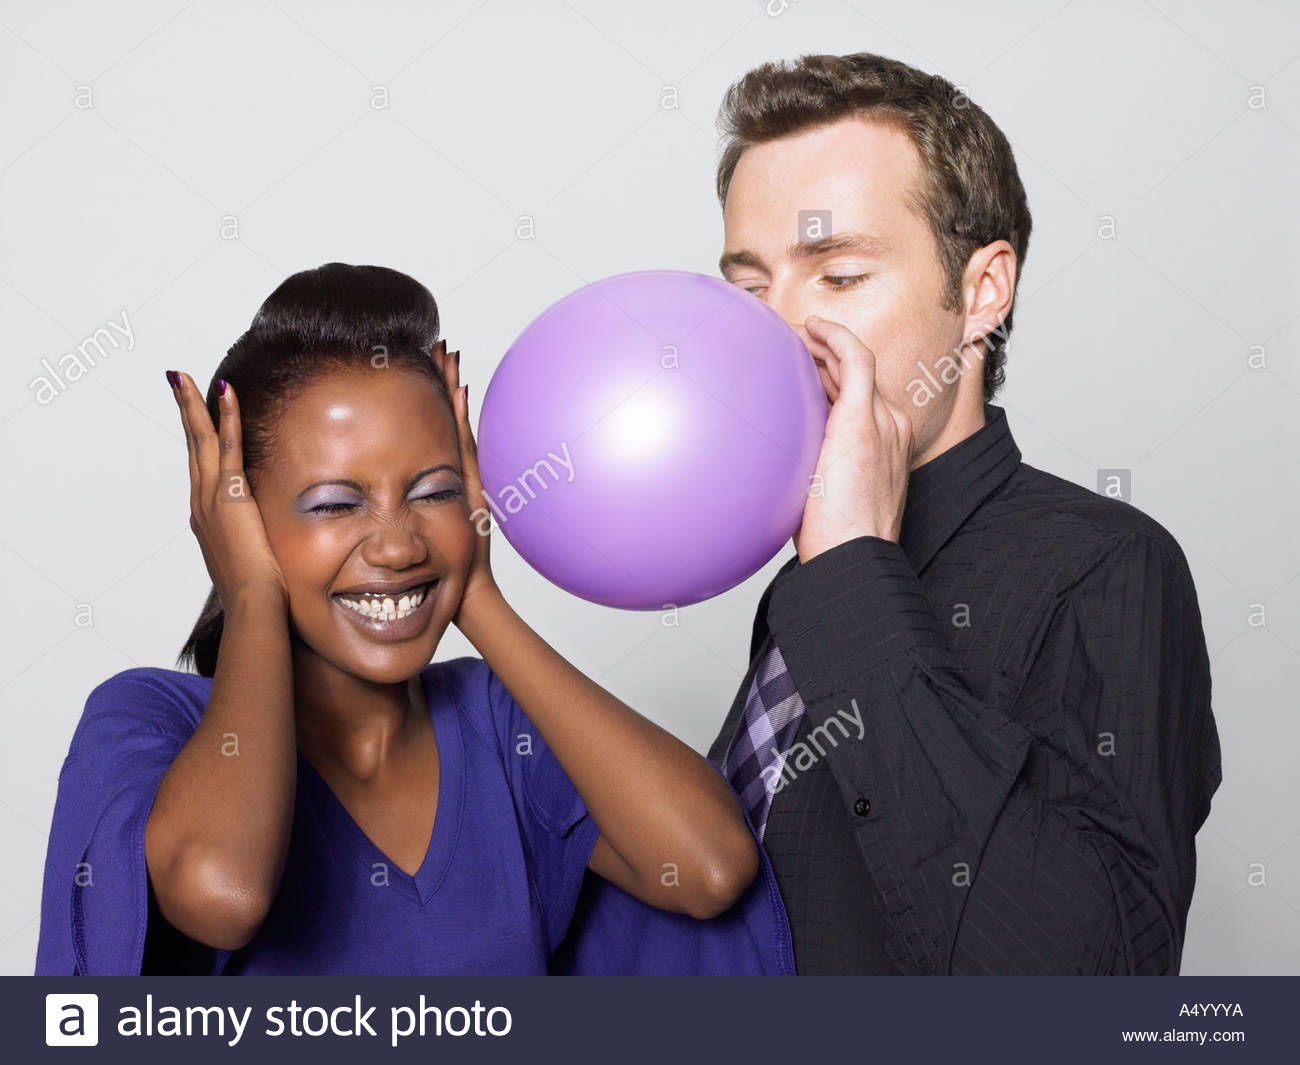 Woman scared of man blowing balloon - Stock Image